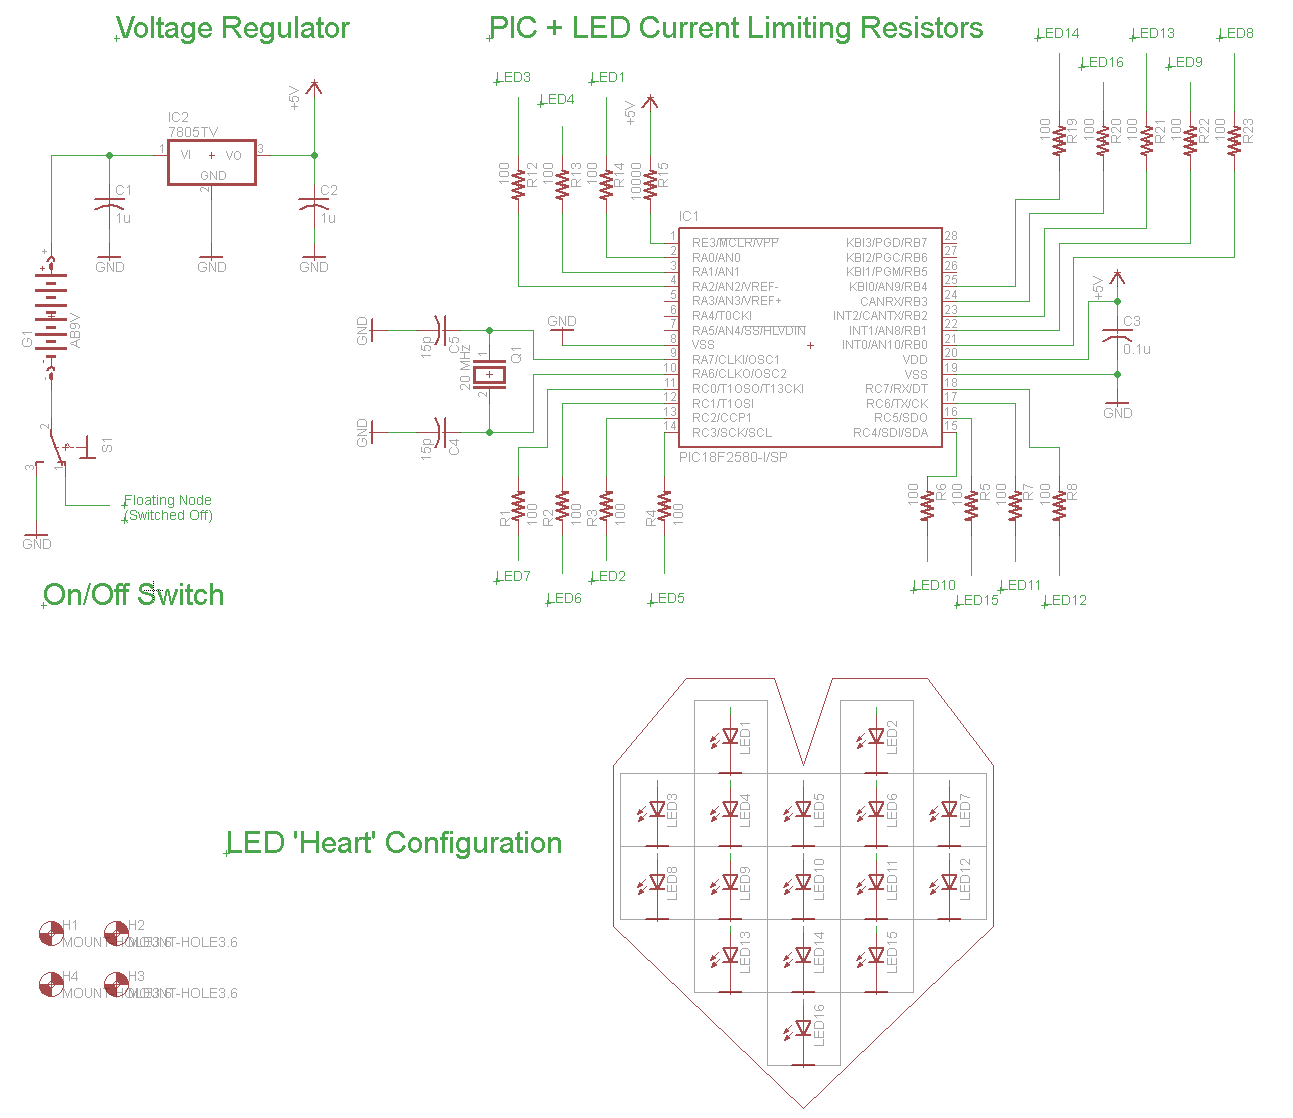 LED Heart PWM Fading - Schematic PCB Layout | PyroElectro - News ...